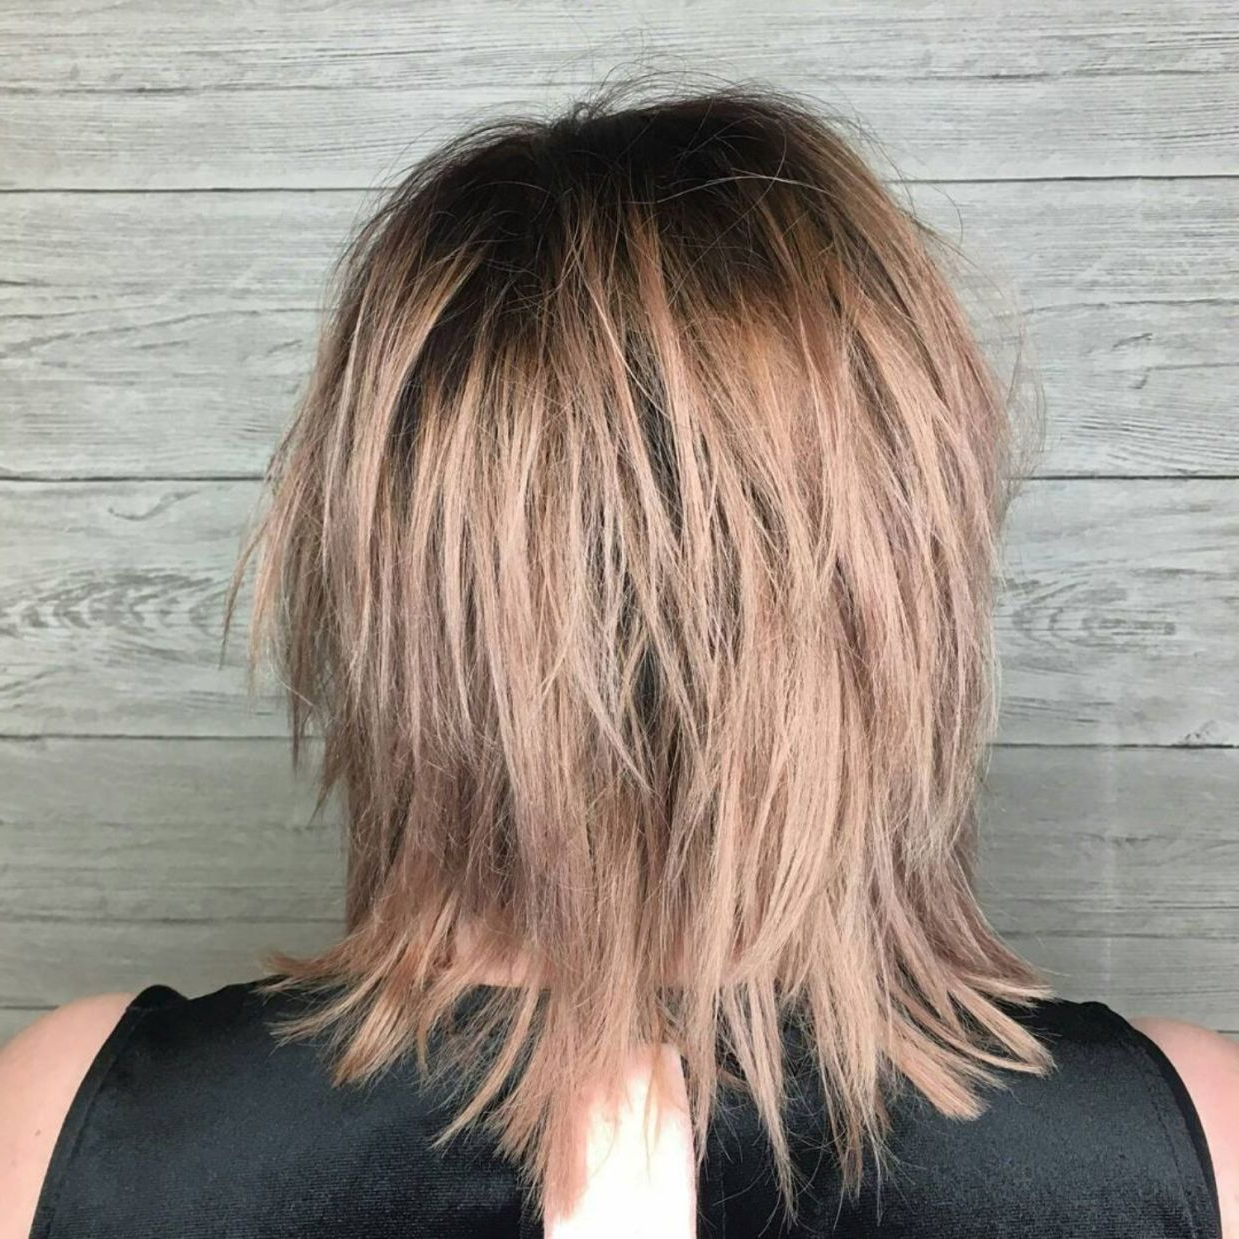 50 Best Variations Of A Medium Shag Haircut For Your Distinctive For 2018 Medium Golden Bronde Shag Hairstyles (Gallery 7 of 20)